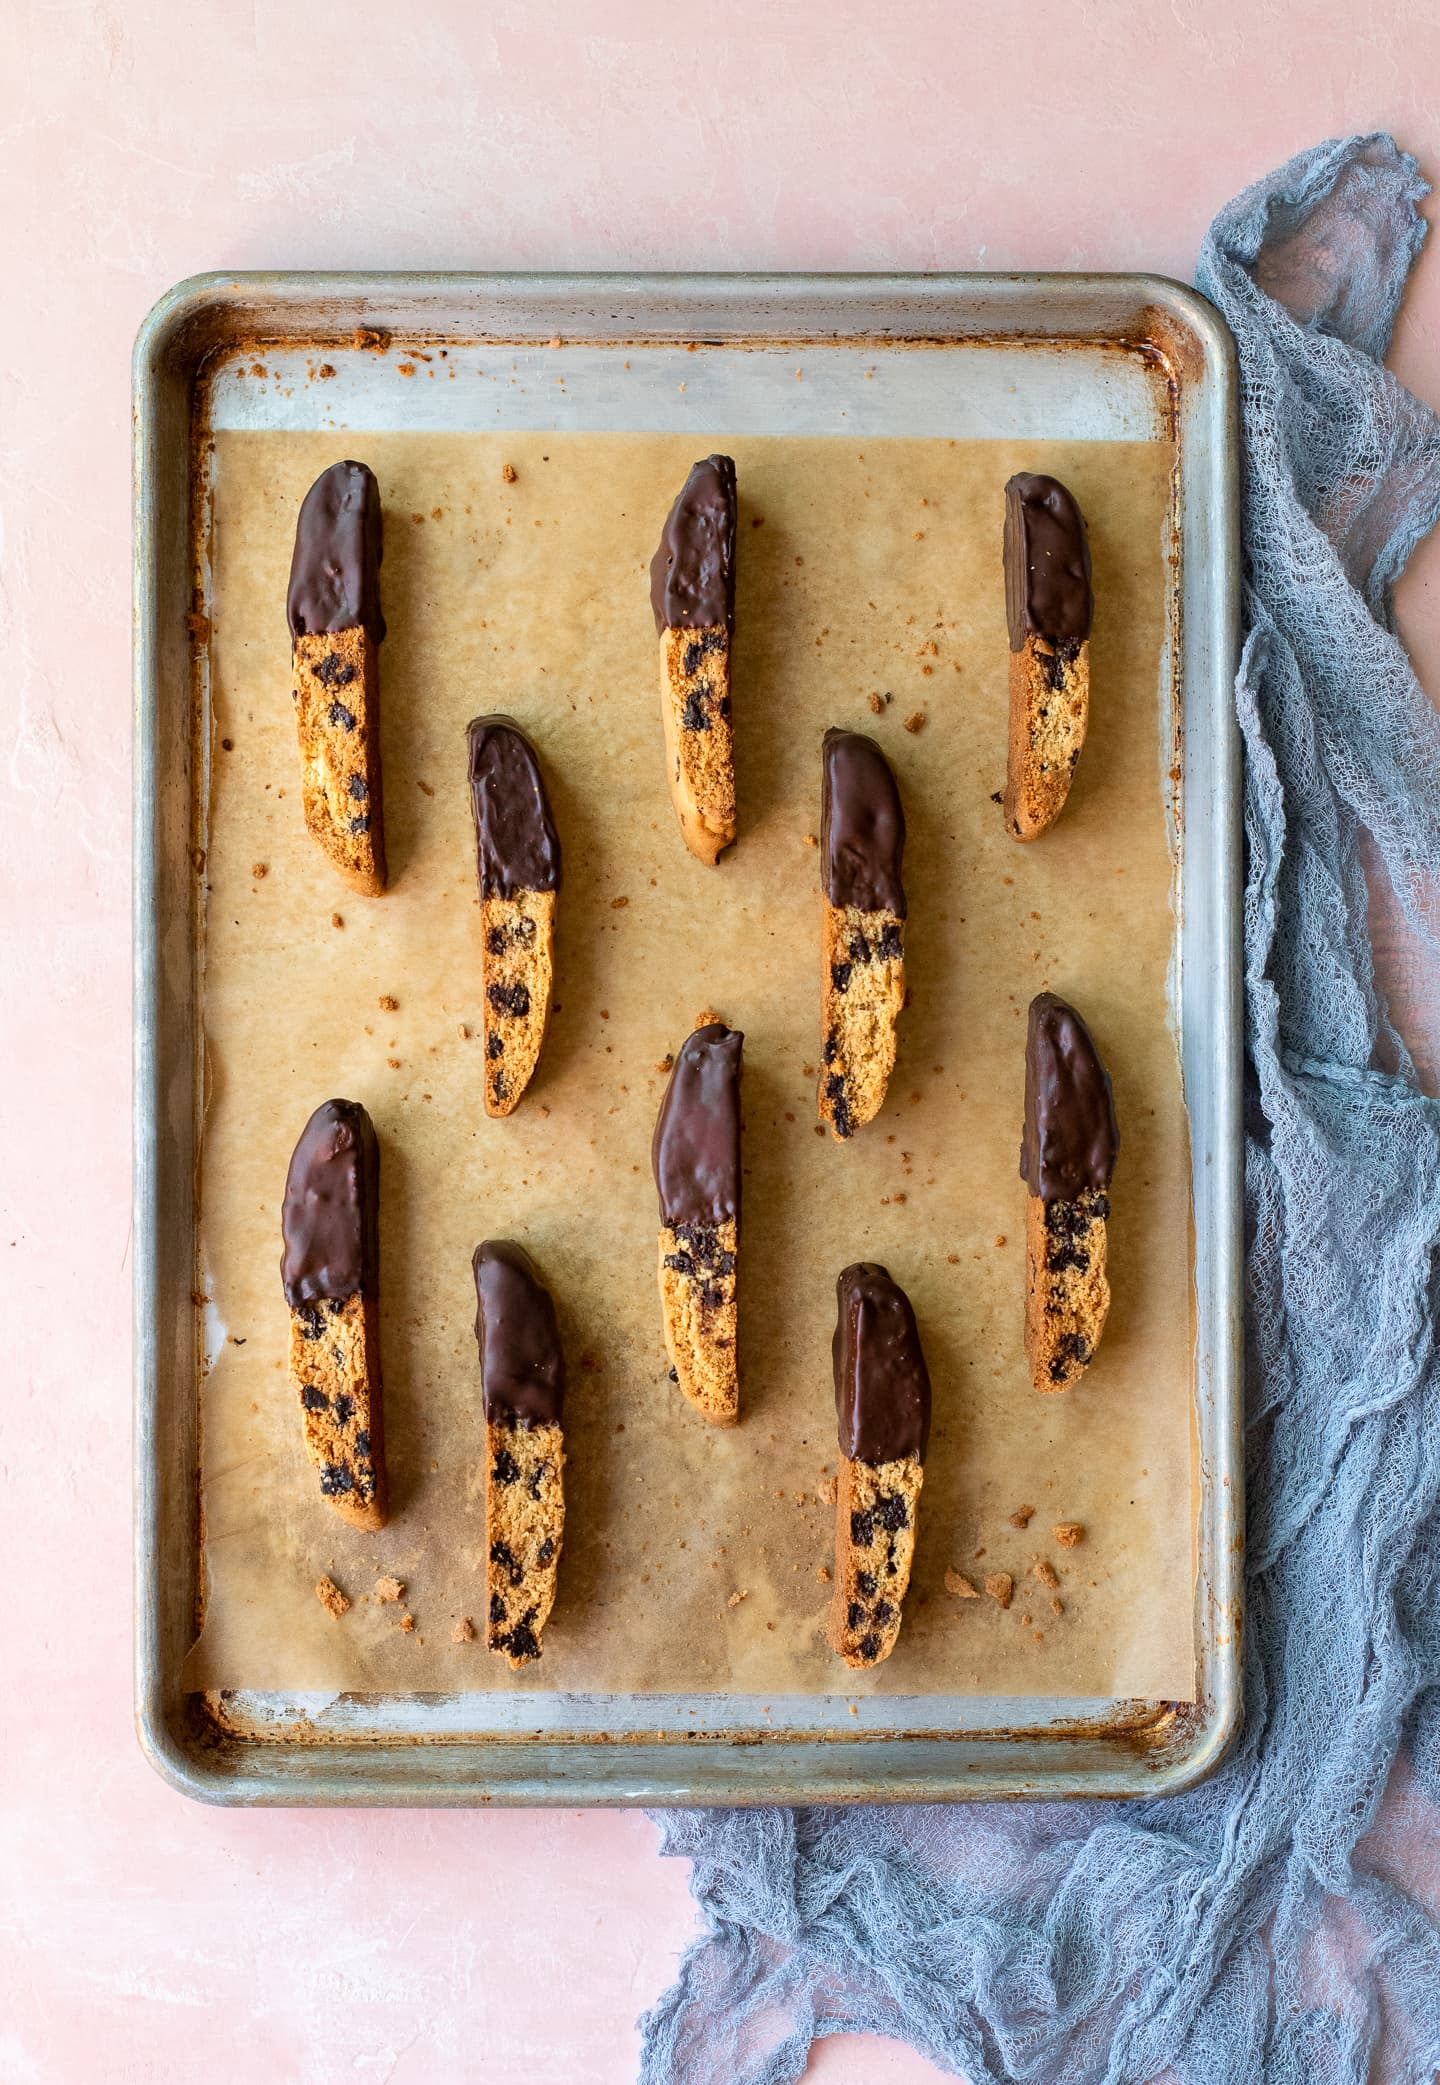 Chocolate chip biscotti dipped in chocolate and arranged on a baking sheet over a light pink backdrop.